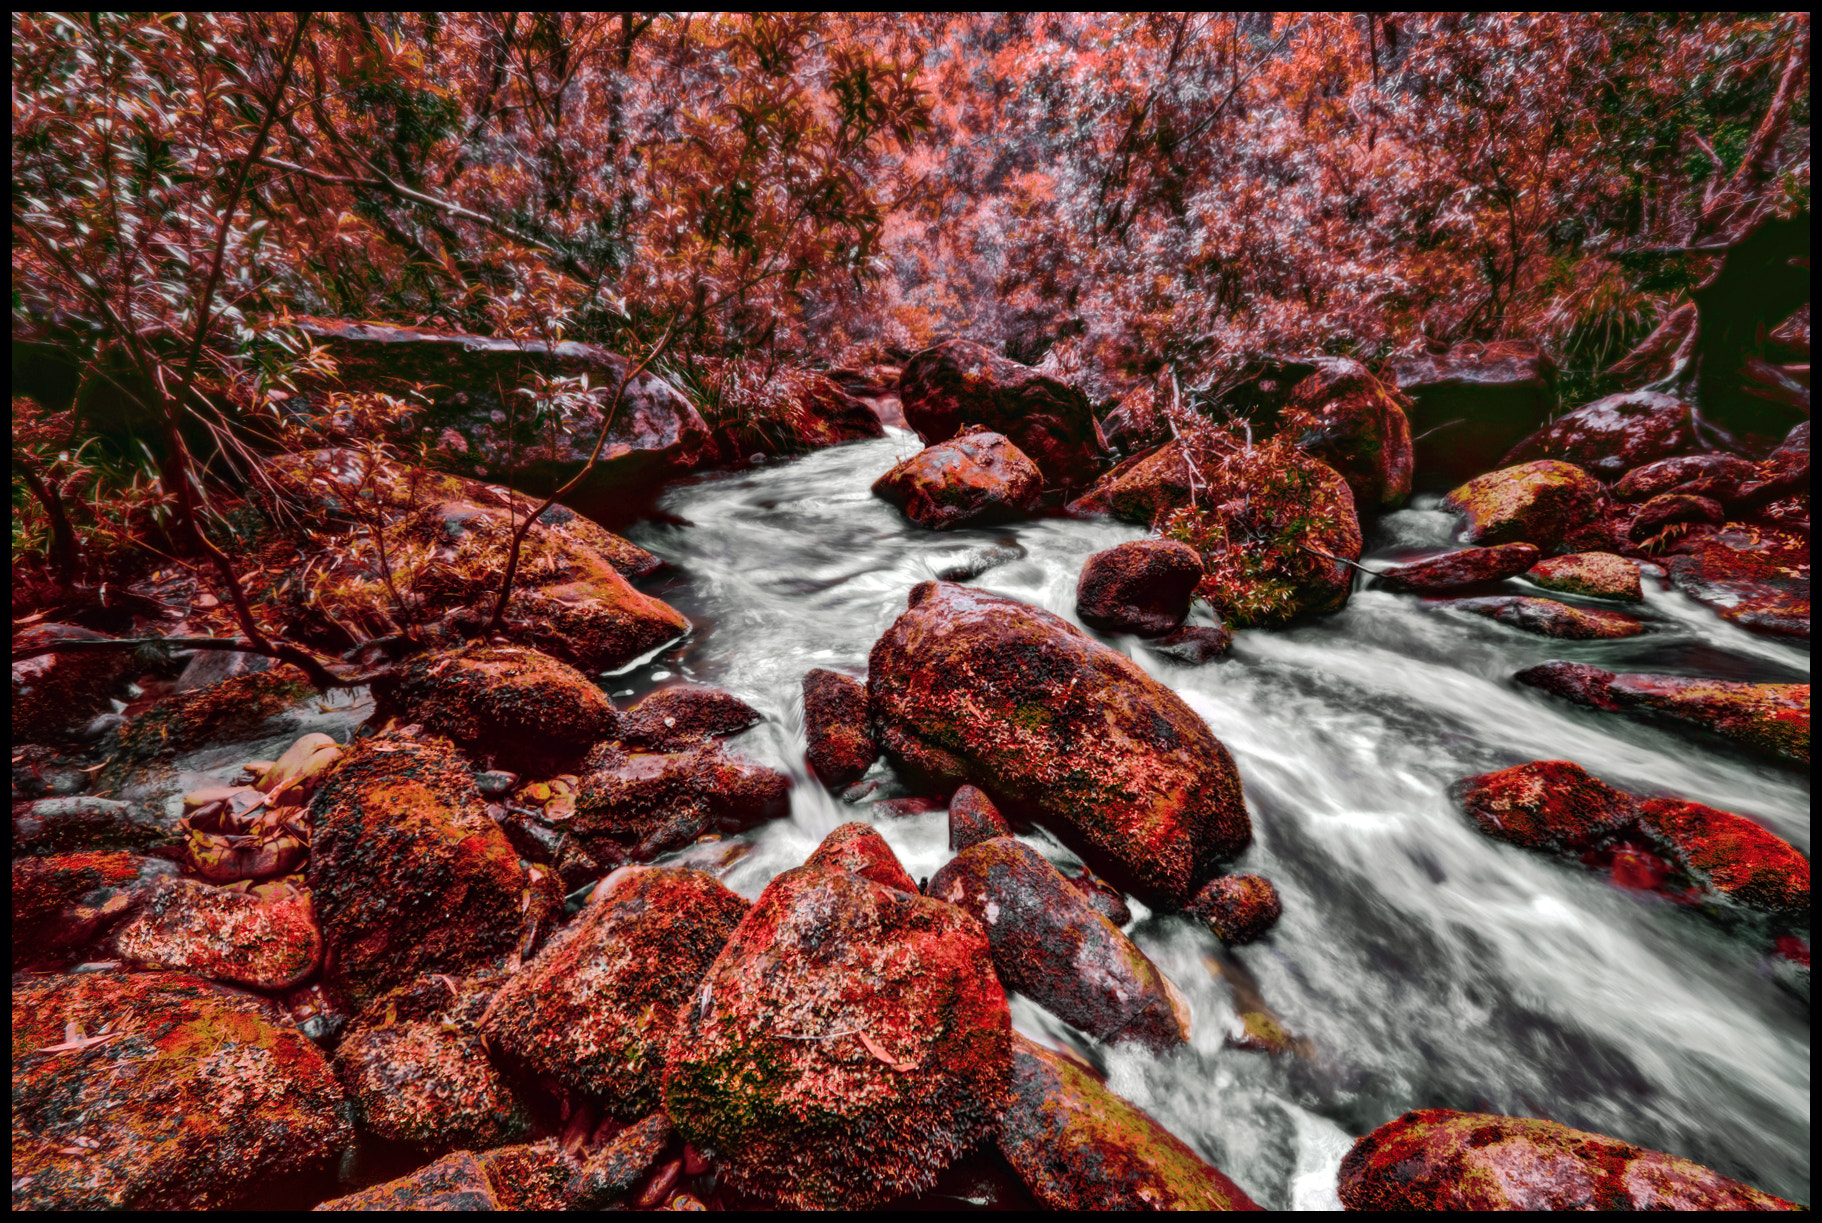 Photograph Go with the Flow by Steve Passlow on 500px